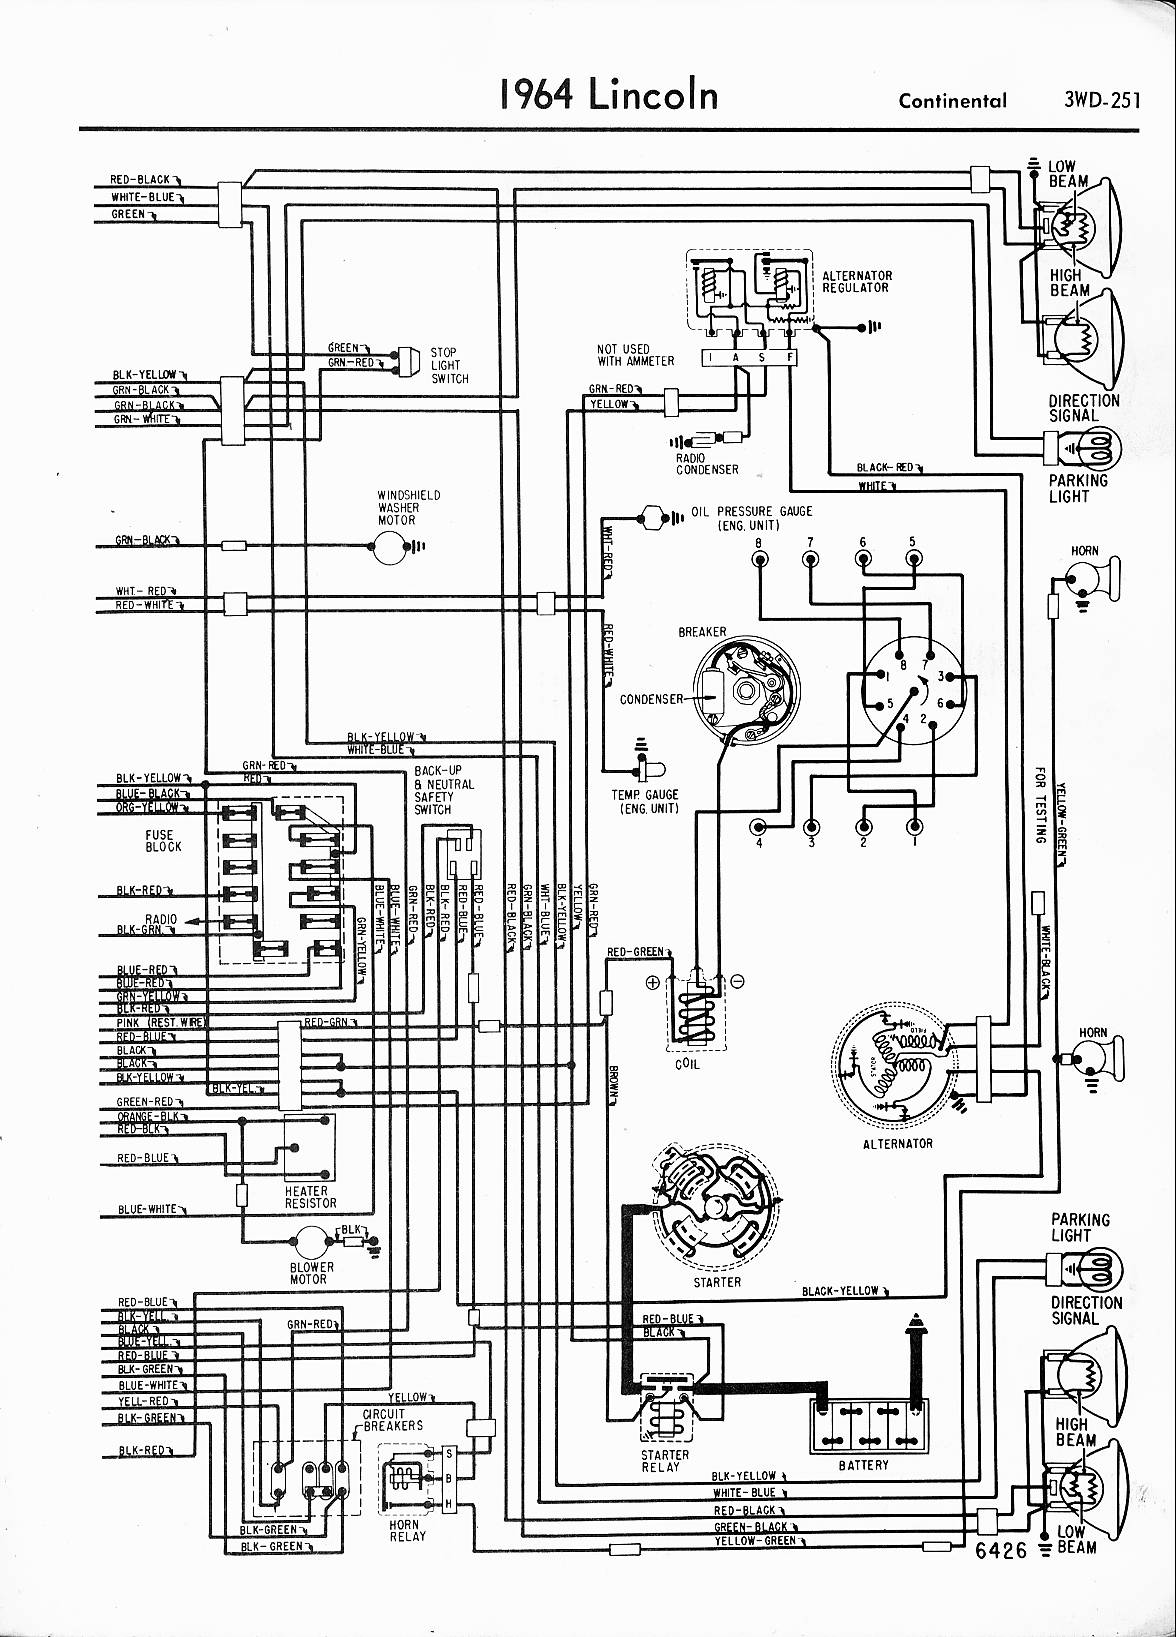 MWireLin_Lin57_z3wd 251z_014 lincoln wiring diagrams 1949 lincoln wiring diagram \u2022 free wiring 1977 International Truck Wiring Diagram at readyjetset.co